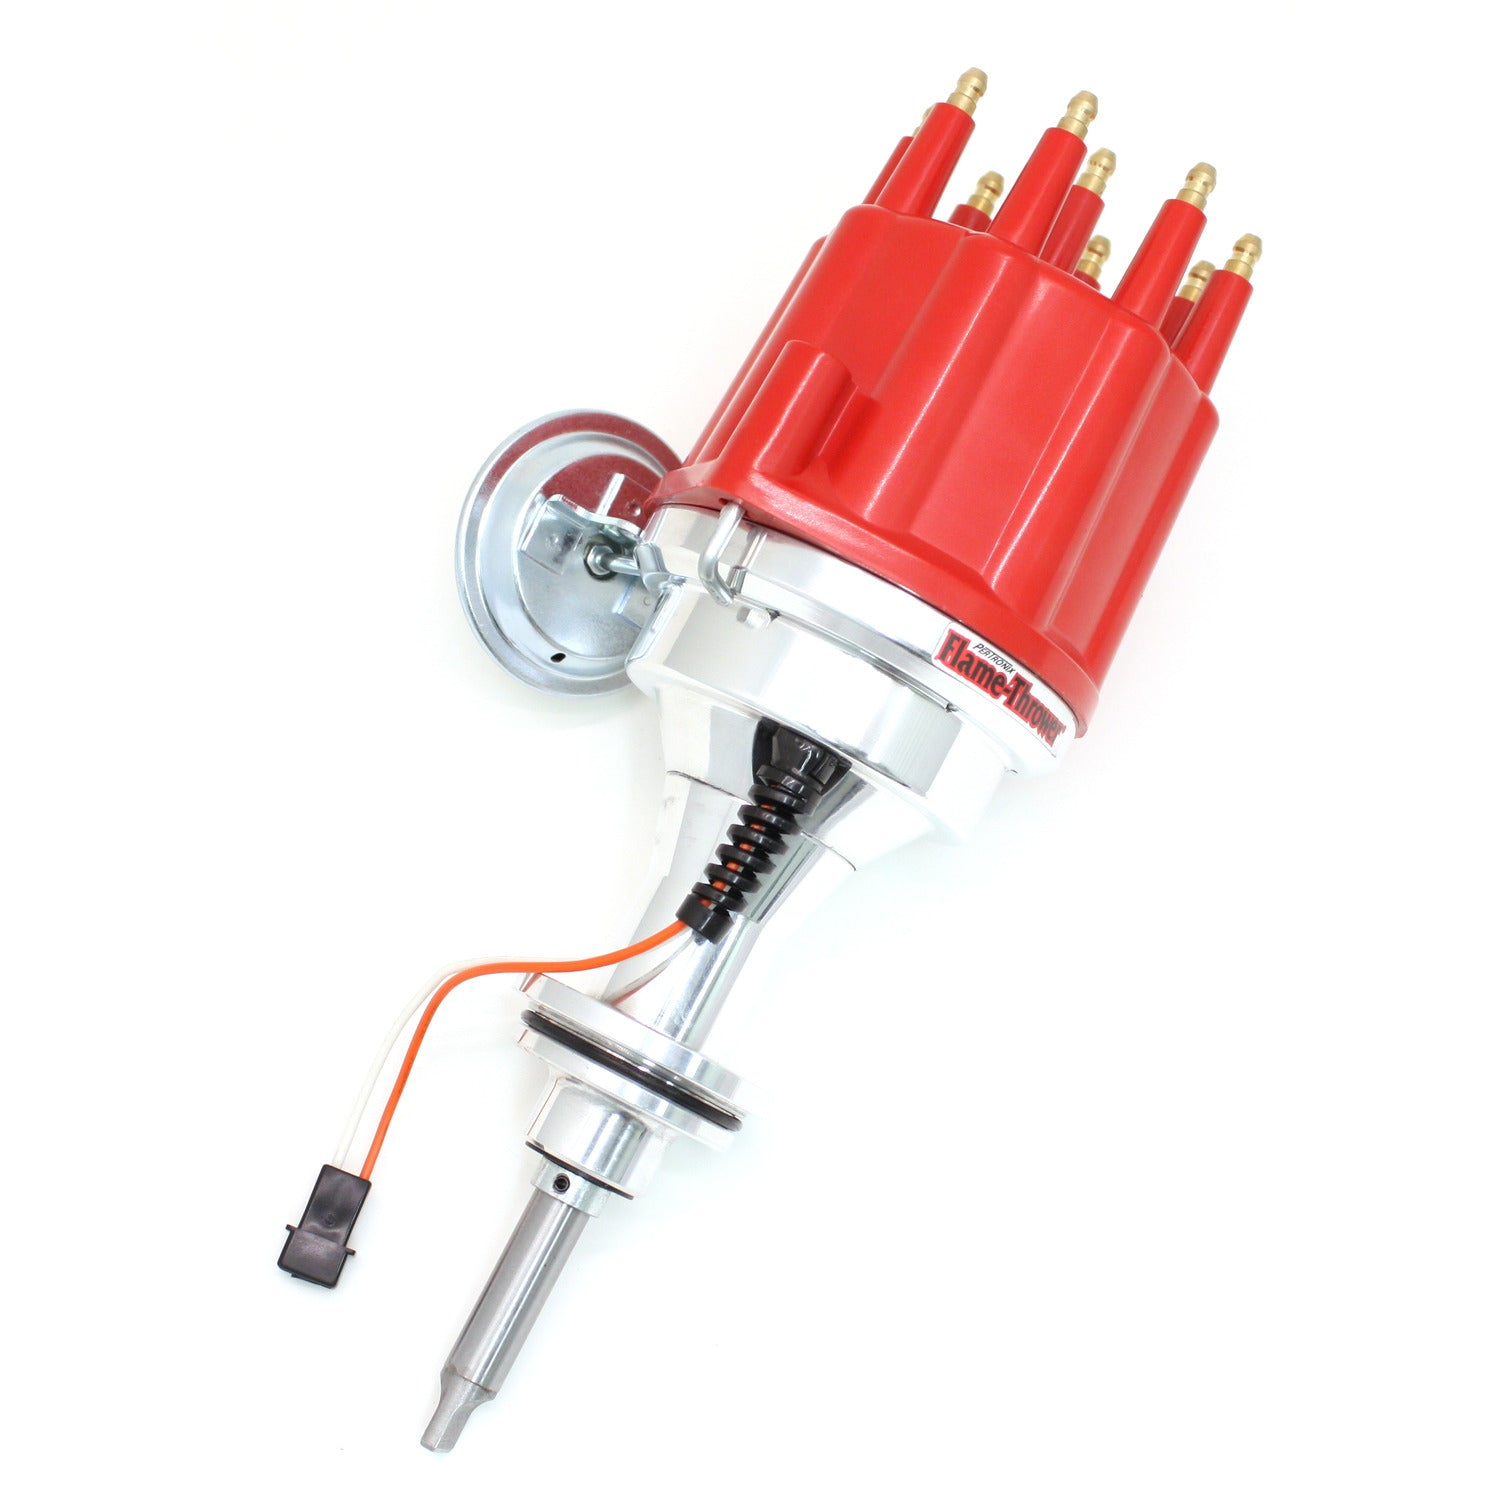 PerTronix D342711 Flame-Thrower Electronic Distributor Billet Magnetic Trigger Chrysler/Dodge/Plymouth 383-400 Red Male Cap Vacuum Advance